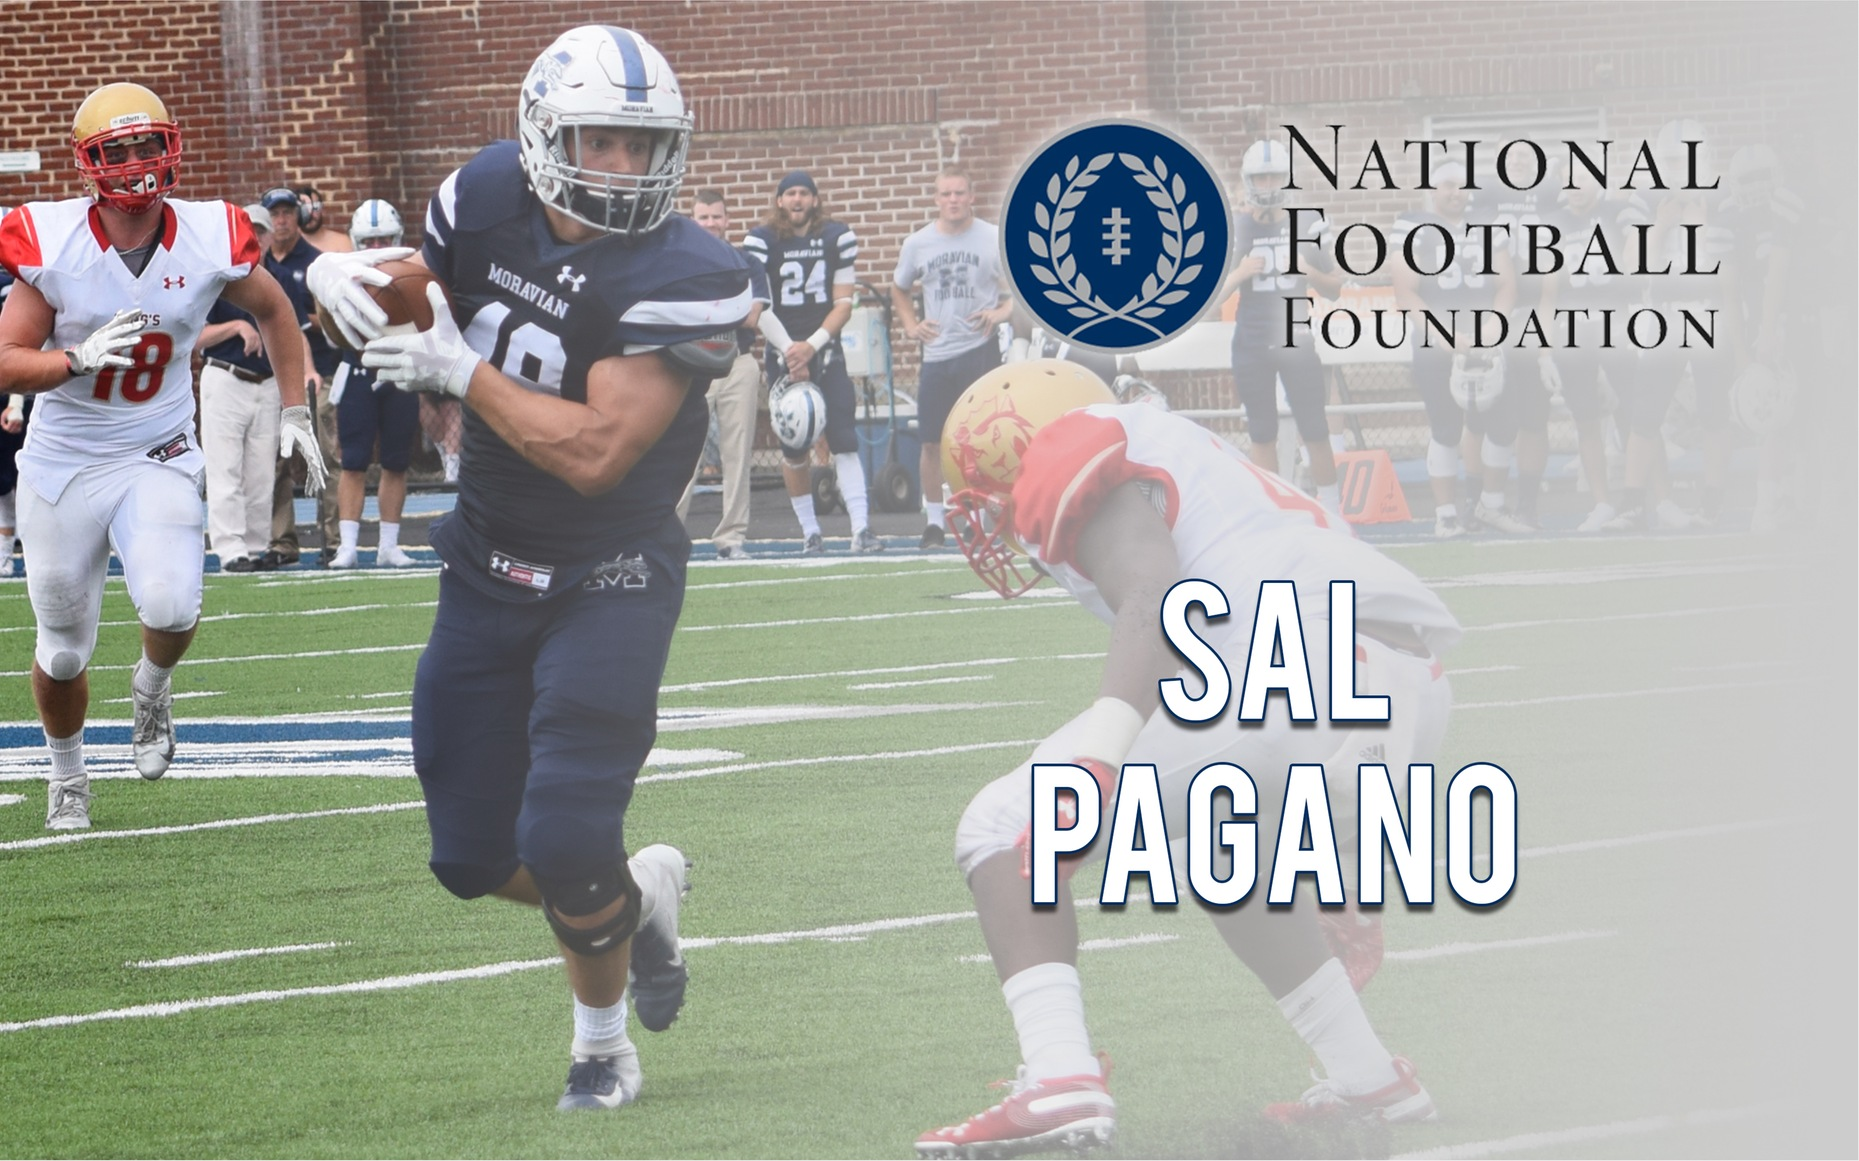 Sal Pagano named semifinalist for National Football Foundation's William V. Campbell Trophy.